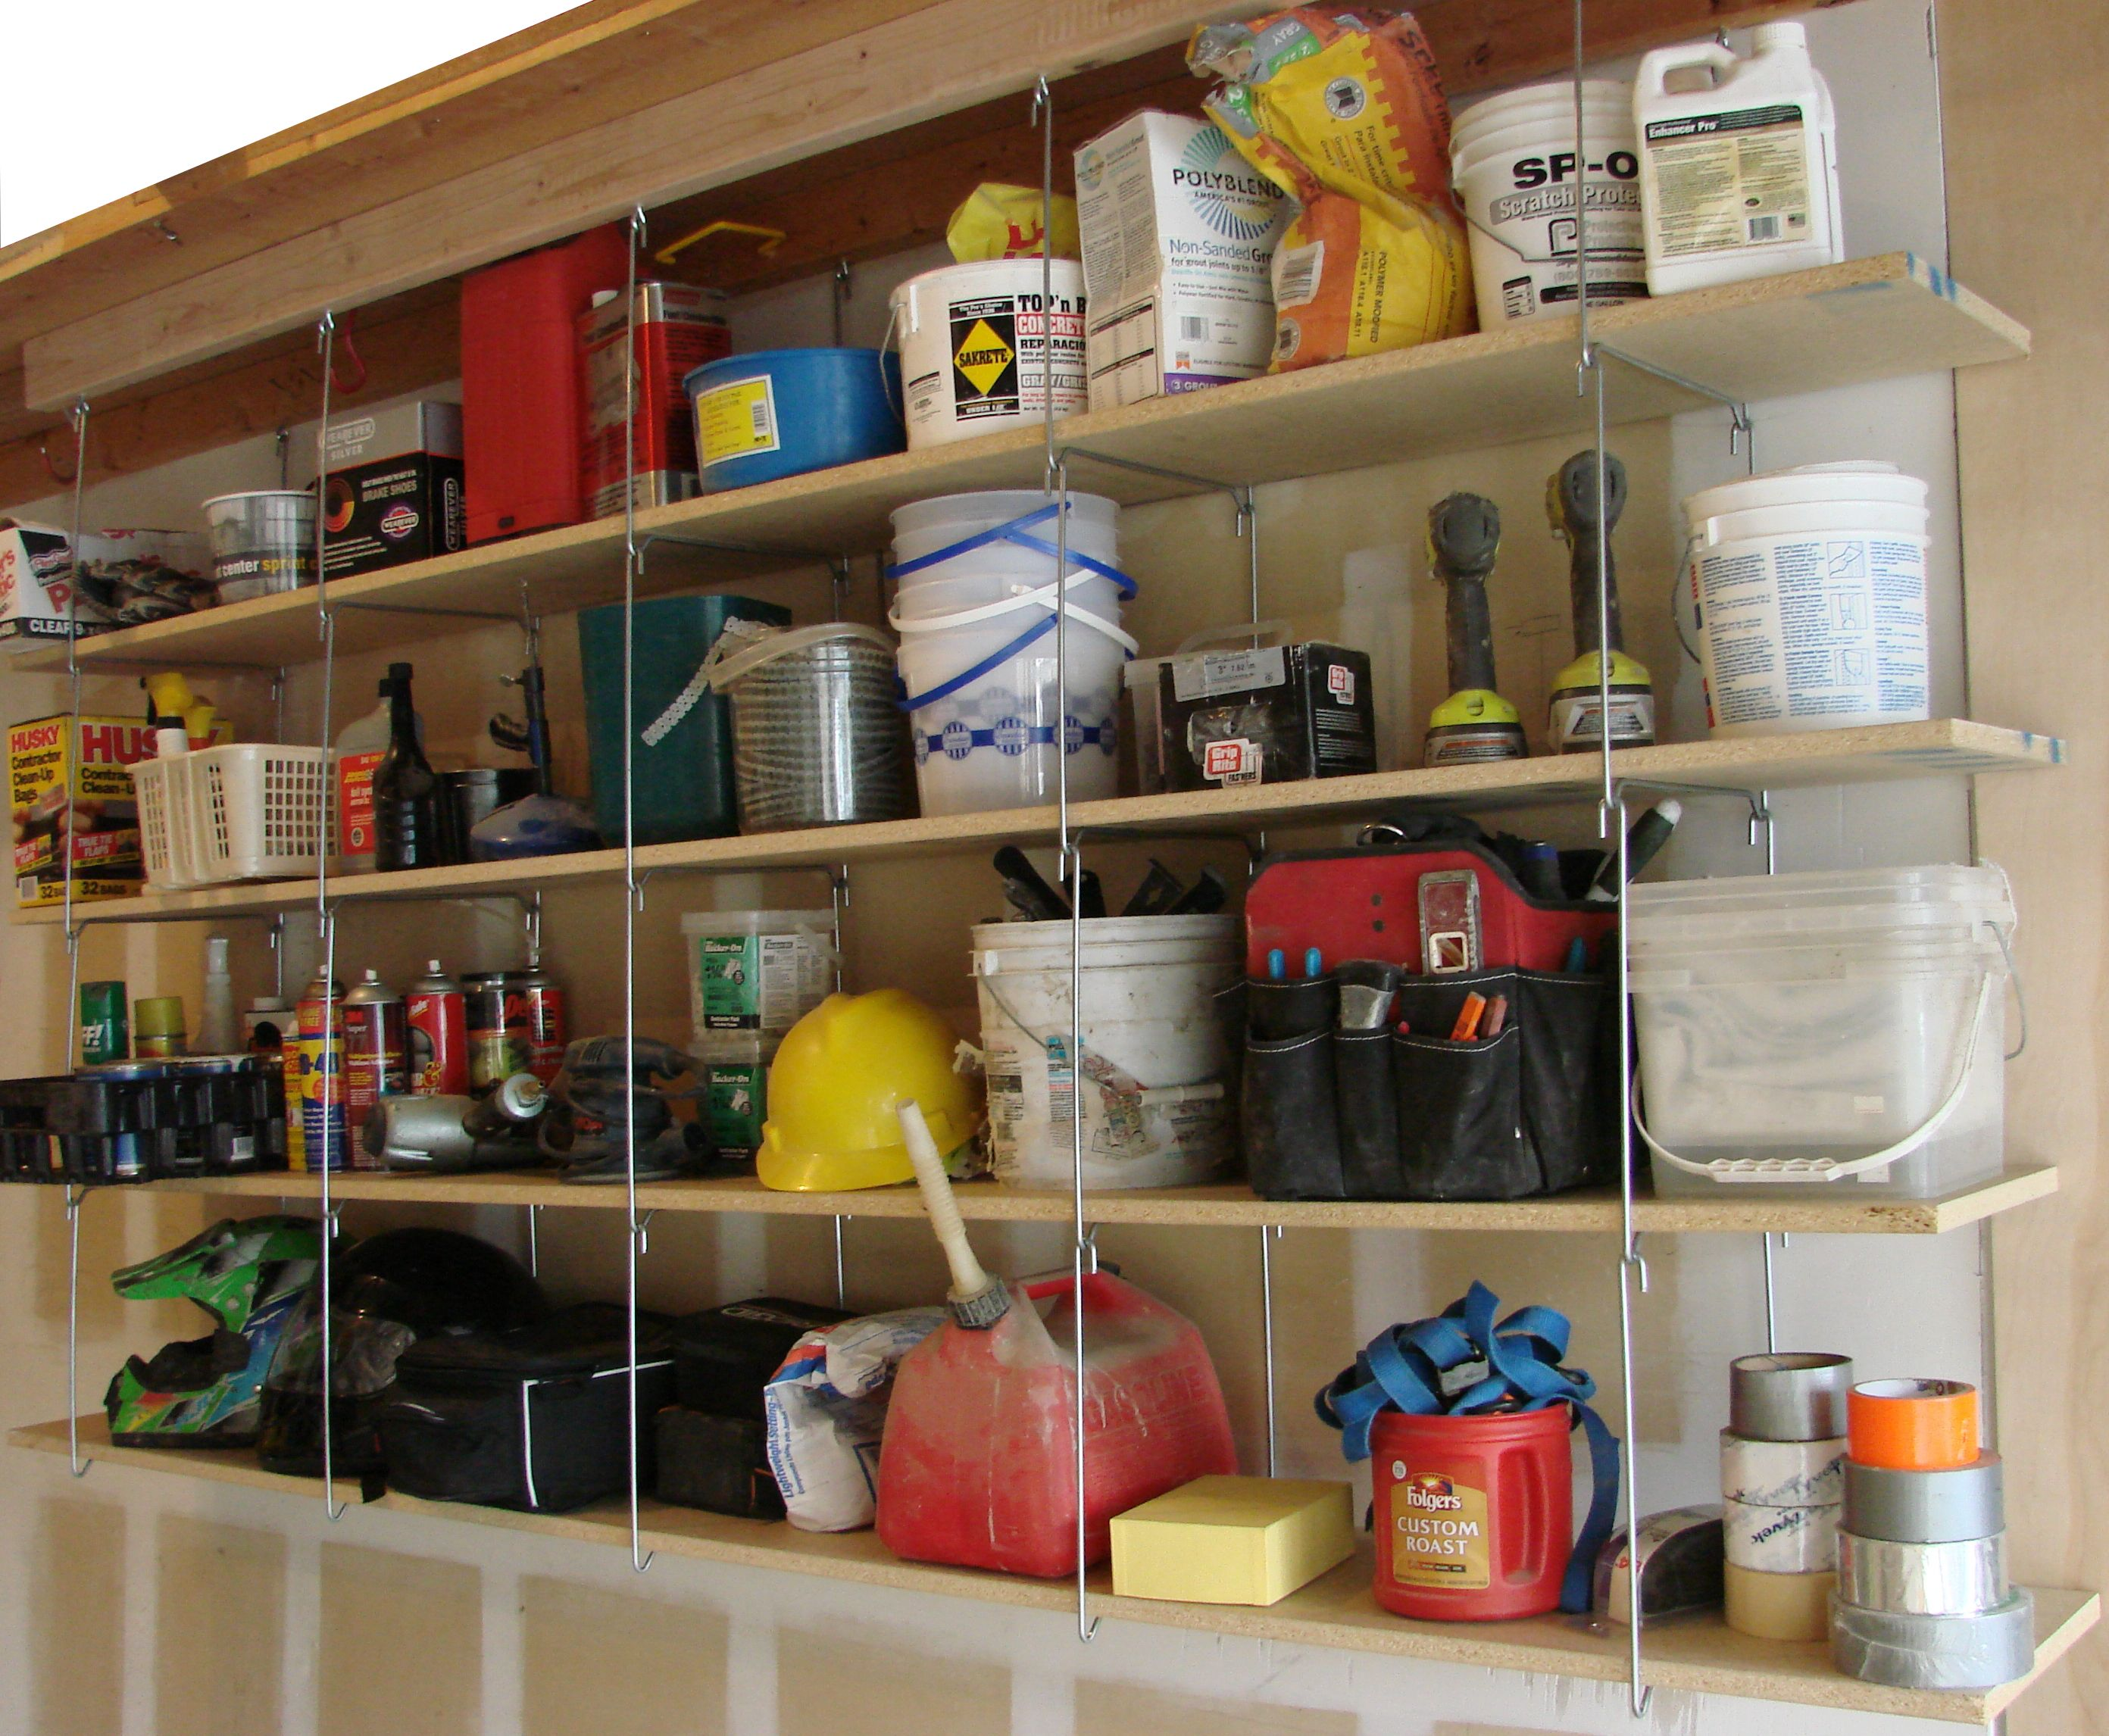 Hangashelfcom-shelves Can Hang From The Ceiling Joists To